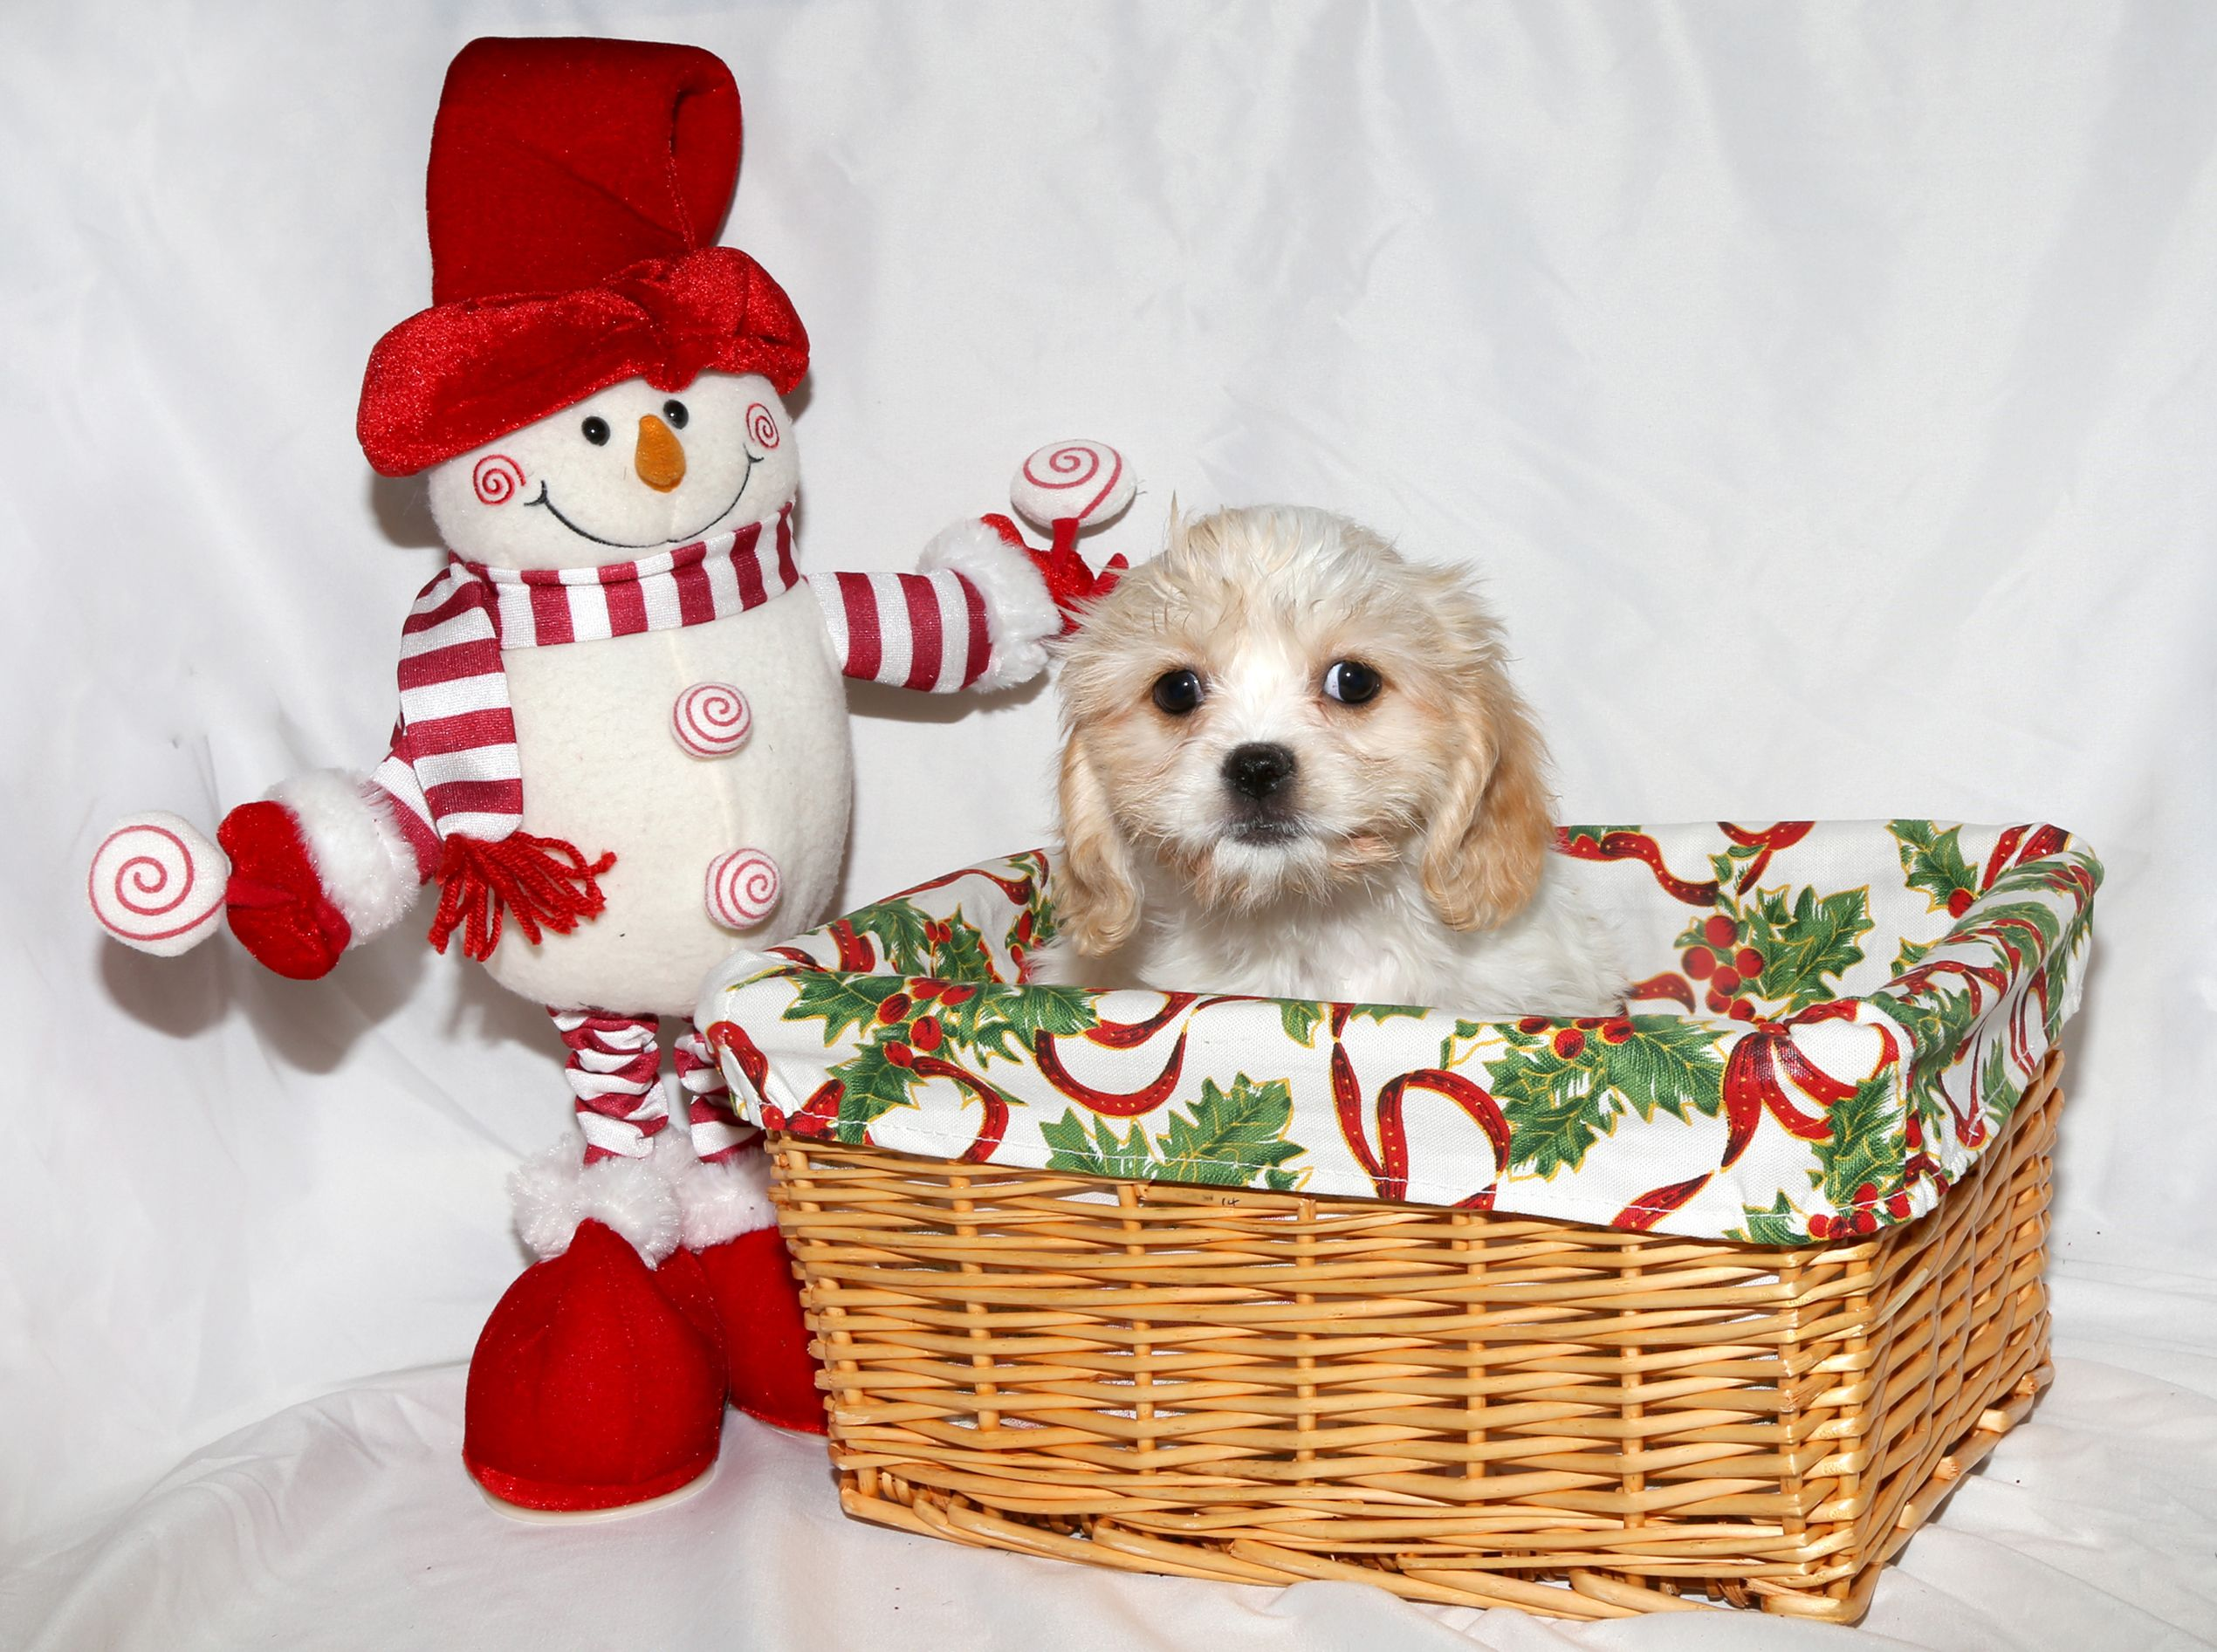 Cava Tzu Puppy For Christmas Puppies For Sale Puppy Love Puppies